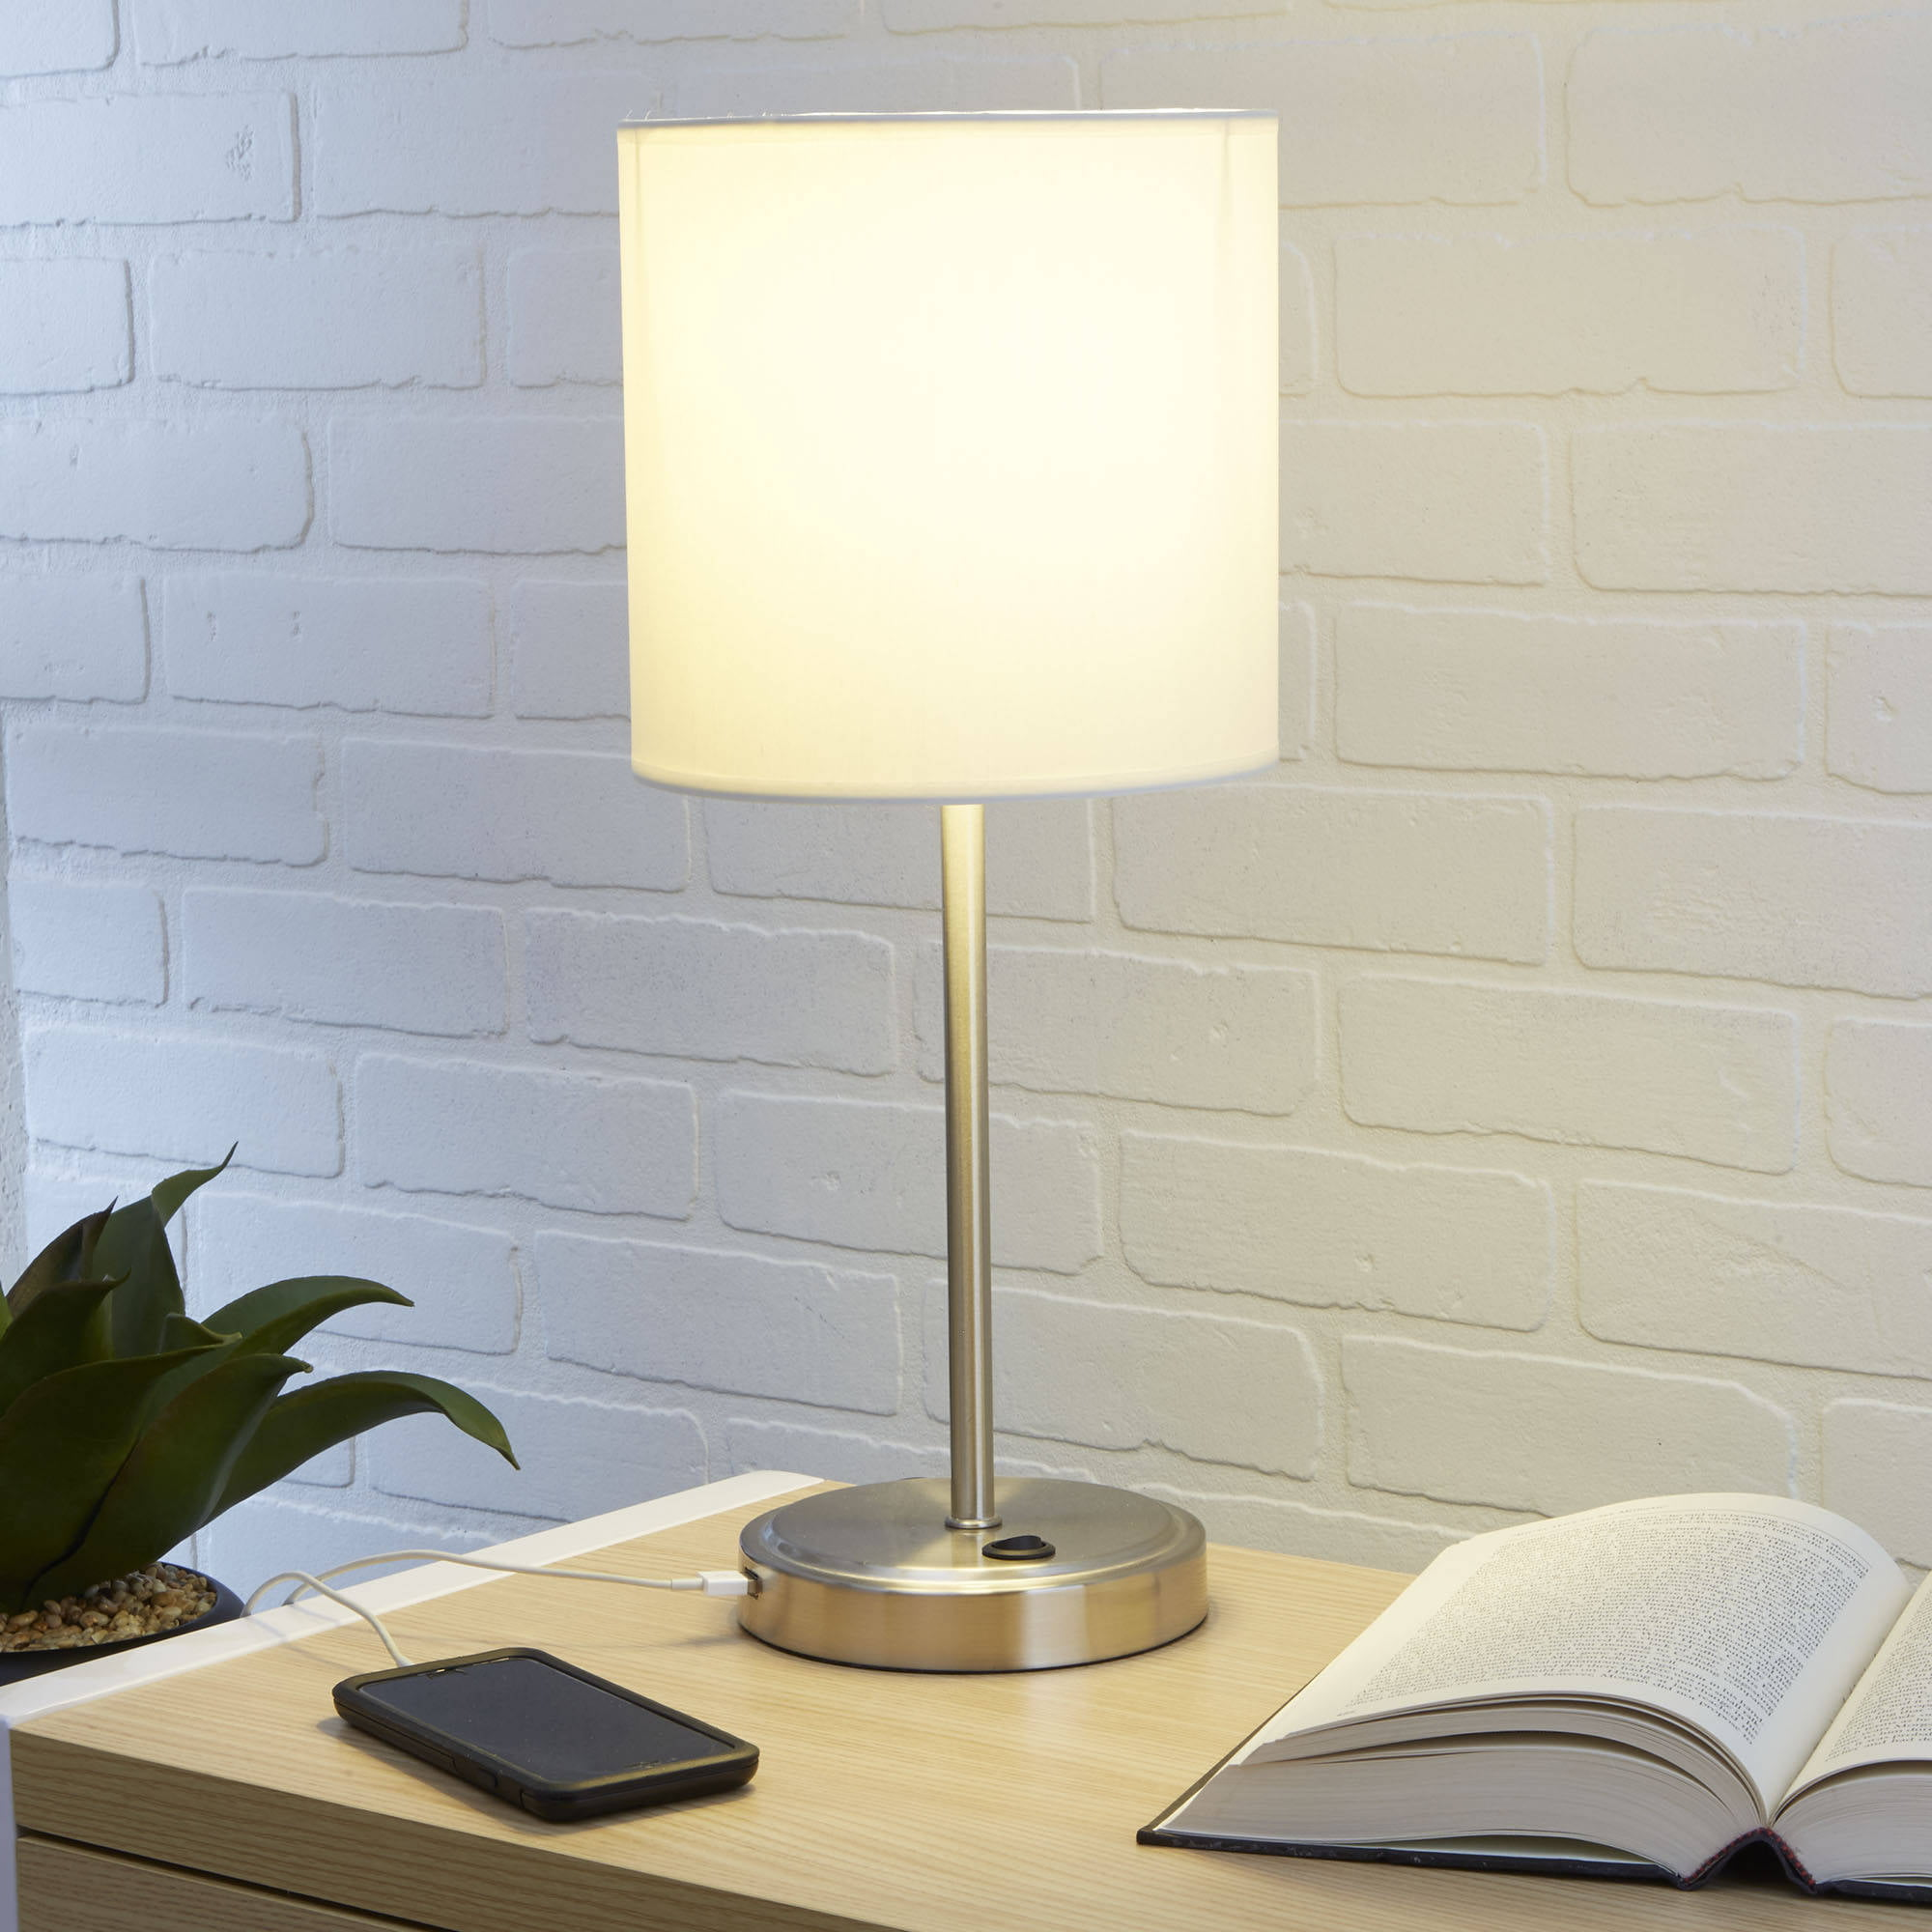 Bedroom Home Decor Desk White Stick Lamp With Built In USB